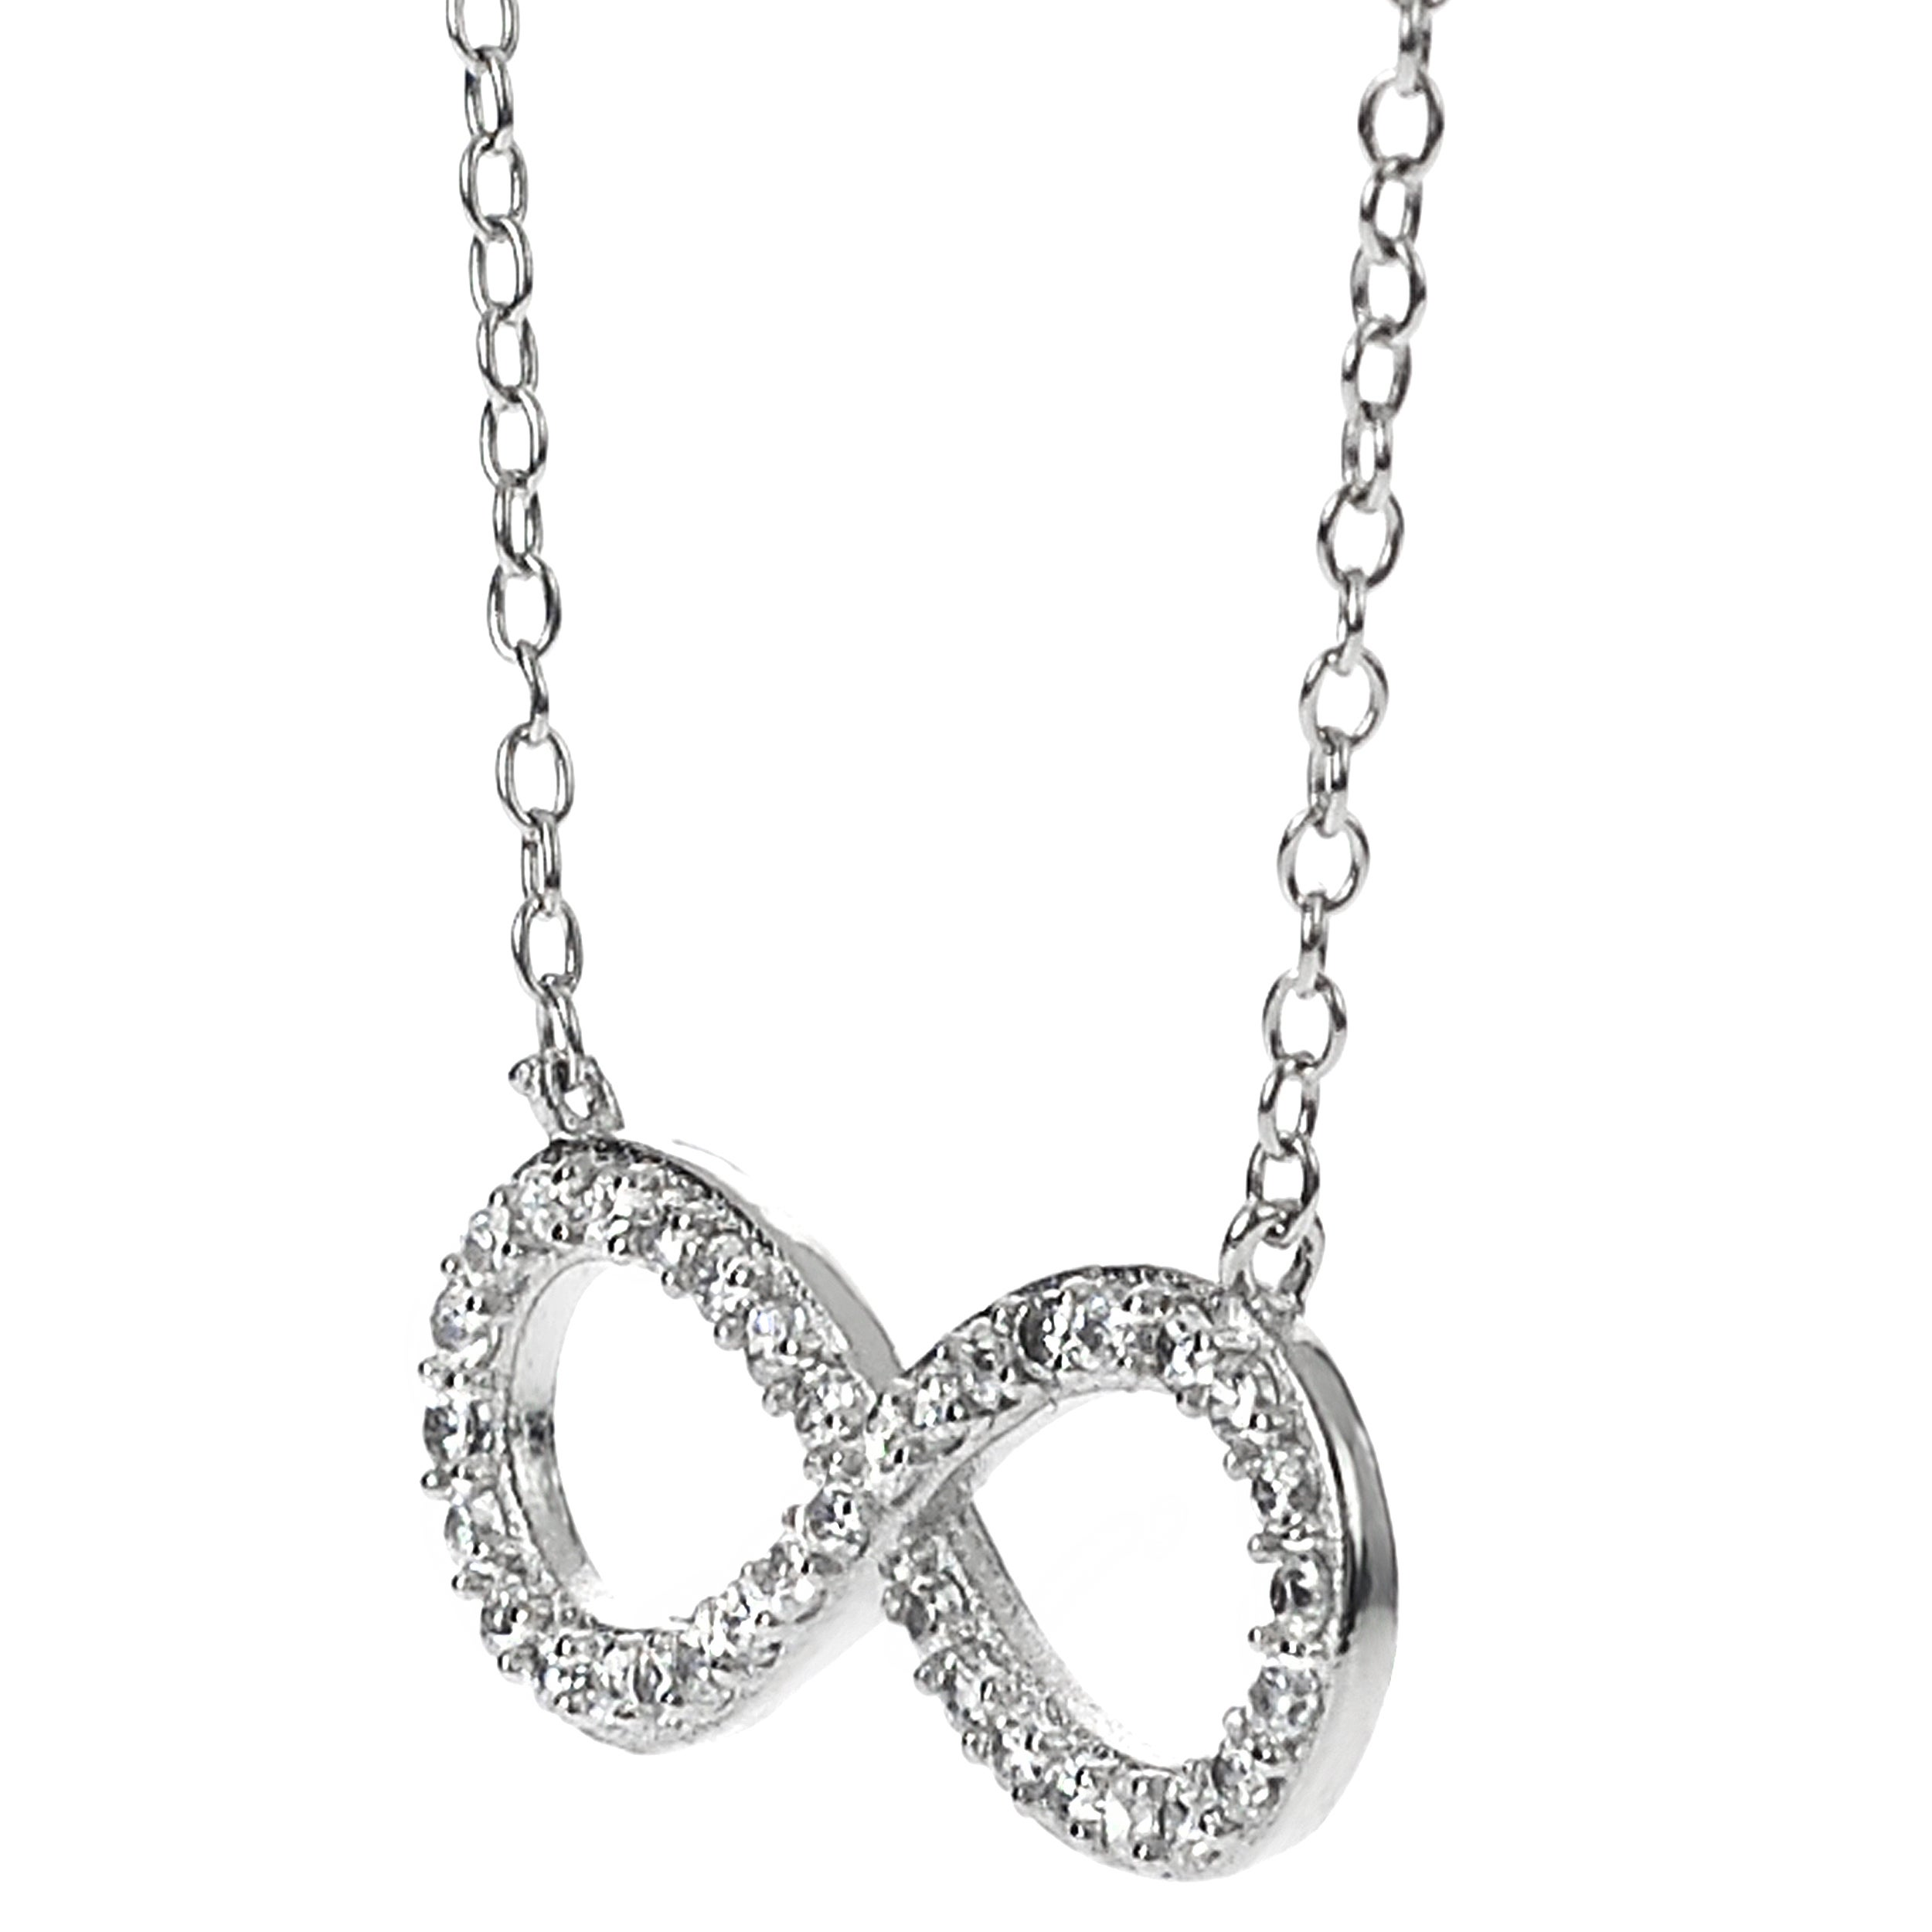 silver web necklace jewelry infinity bracelet products or twisted chain sterling